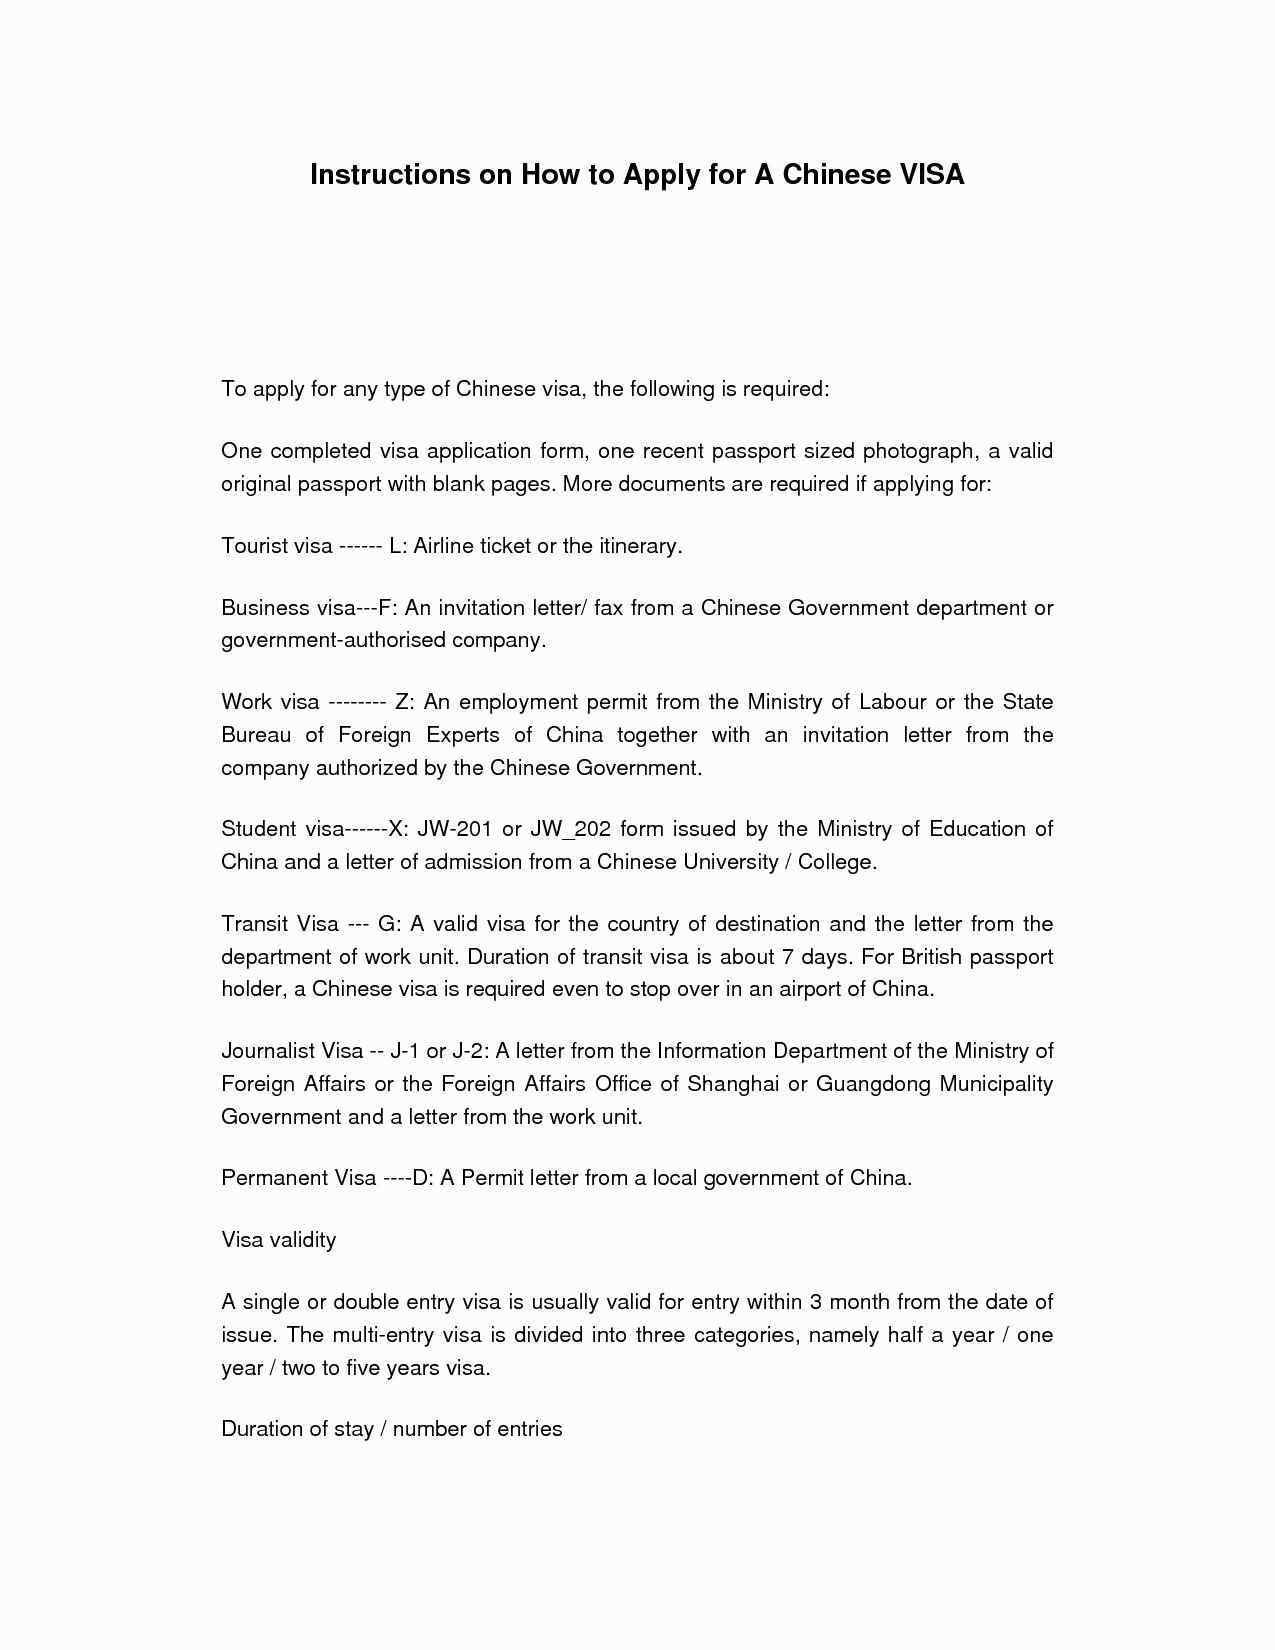 easy cover letter template example-Simple Cover Letter Sample Luxury formal Letter Template Unique bylaws Template 0d Wallpapers 50 18-f